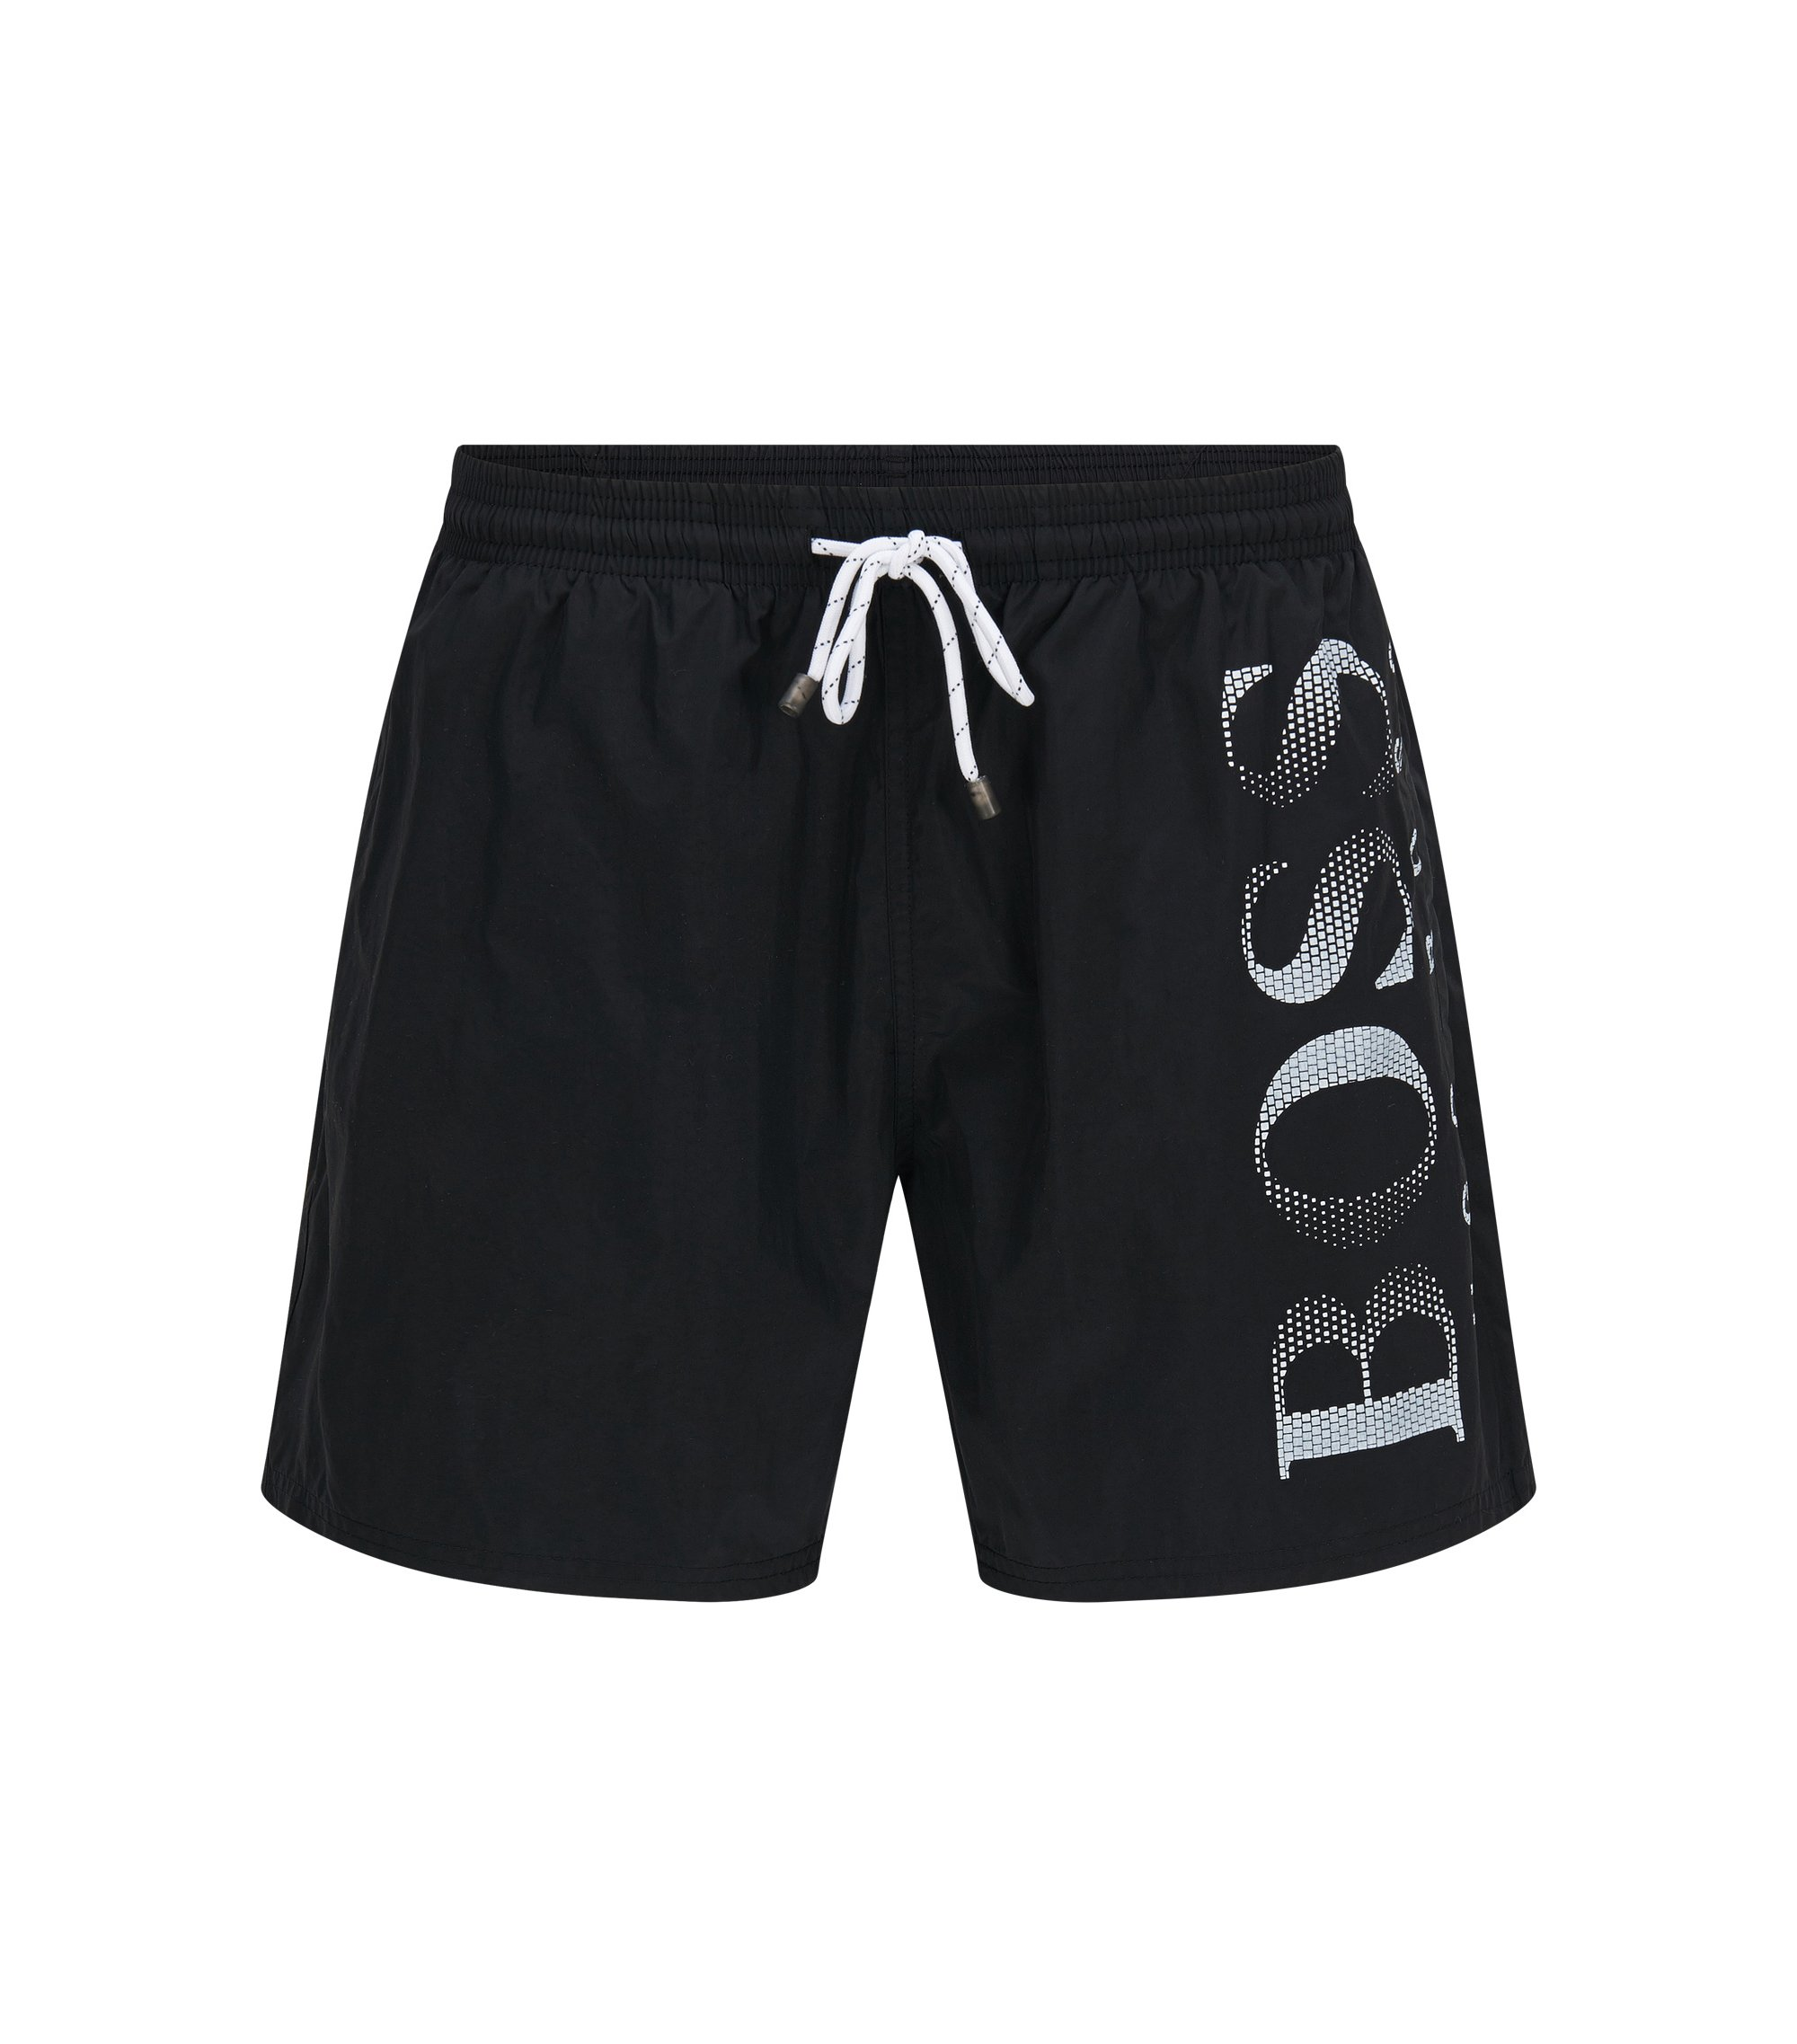 Drawstring swim shorts with logo print, Black